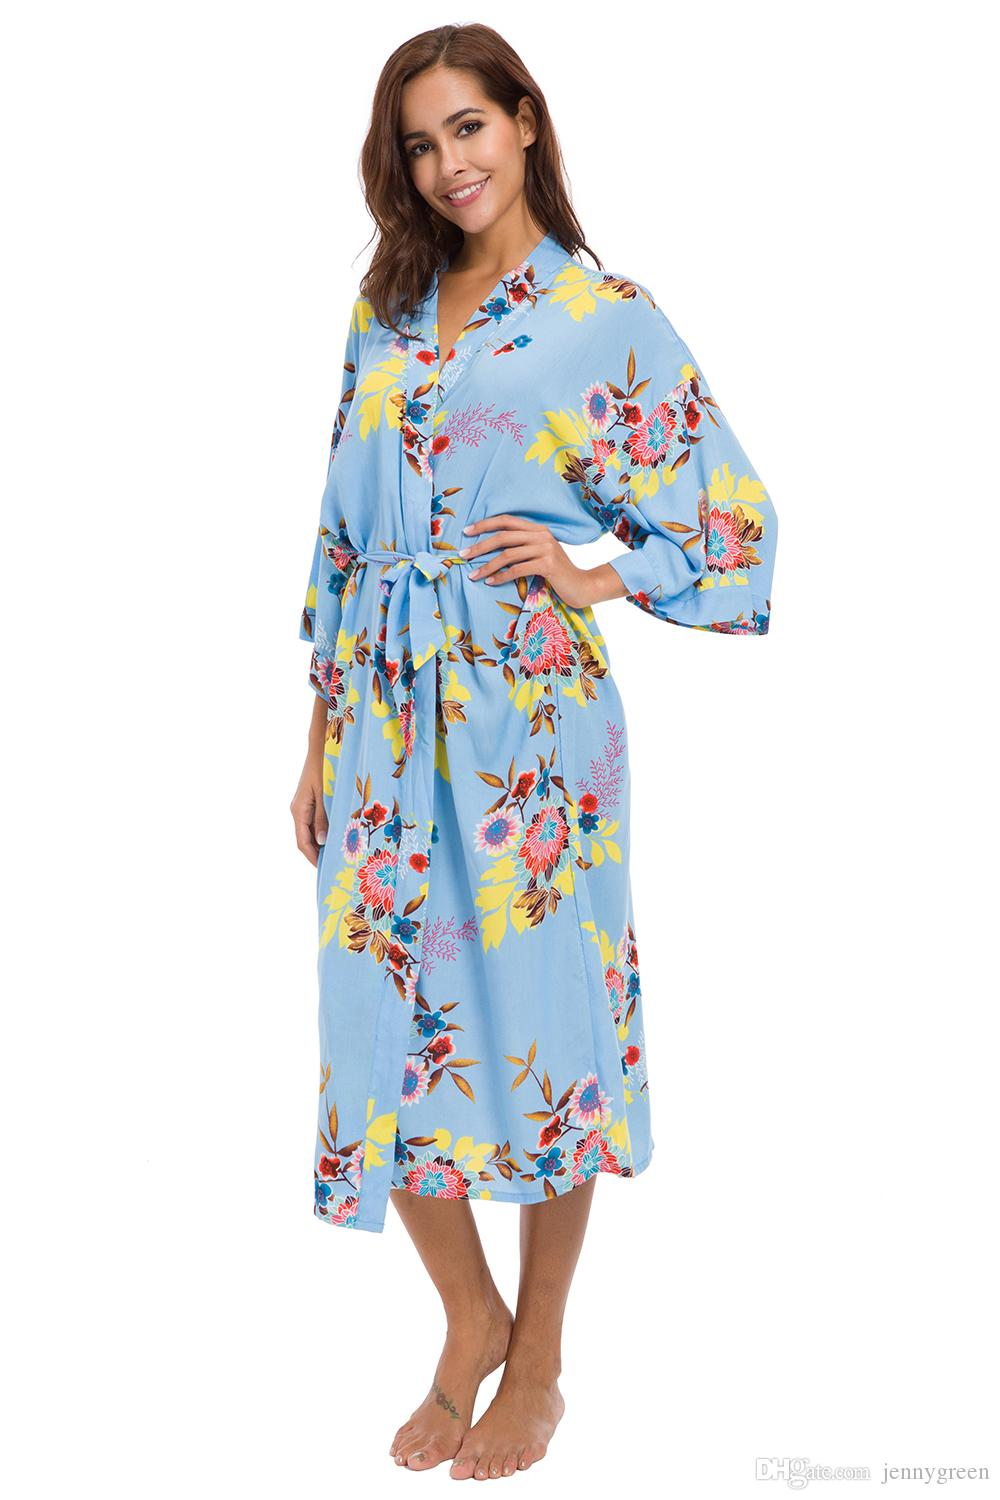 2021 Long Bath Robe Bridal Party Robes Bridal Shower Gift The Best Bridesmaid Gifts Cotton Kimono Robe Monogrammed Bridesmaids Robes Cheap From Jennygreen 20 3 Dhgate Com